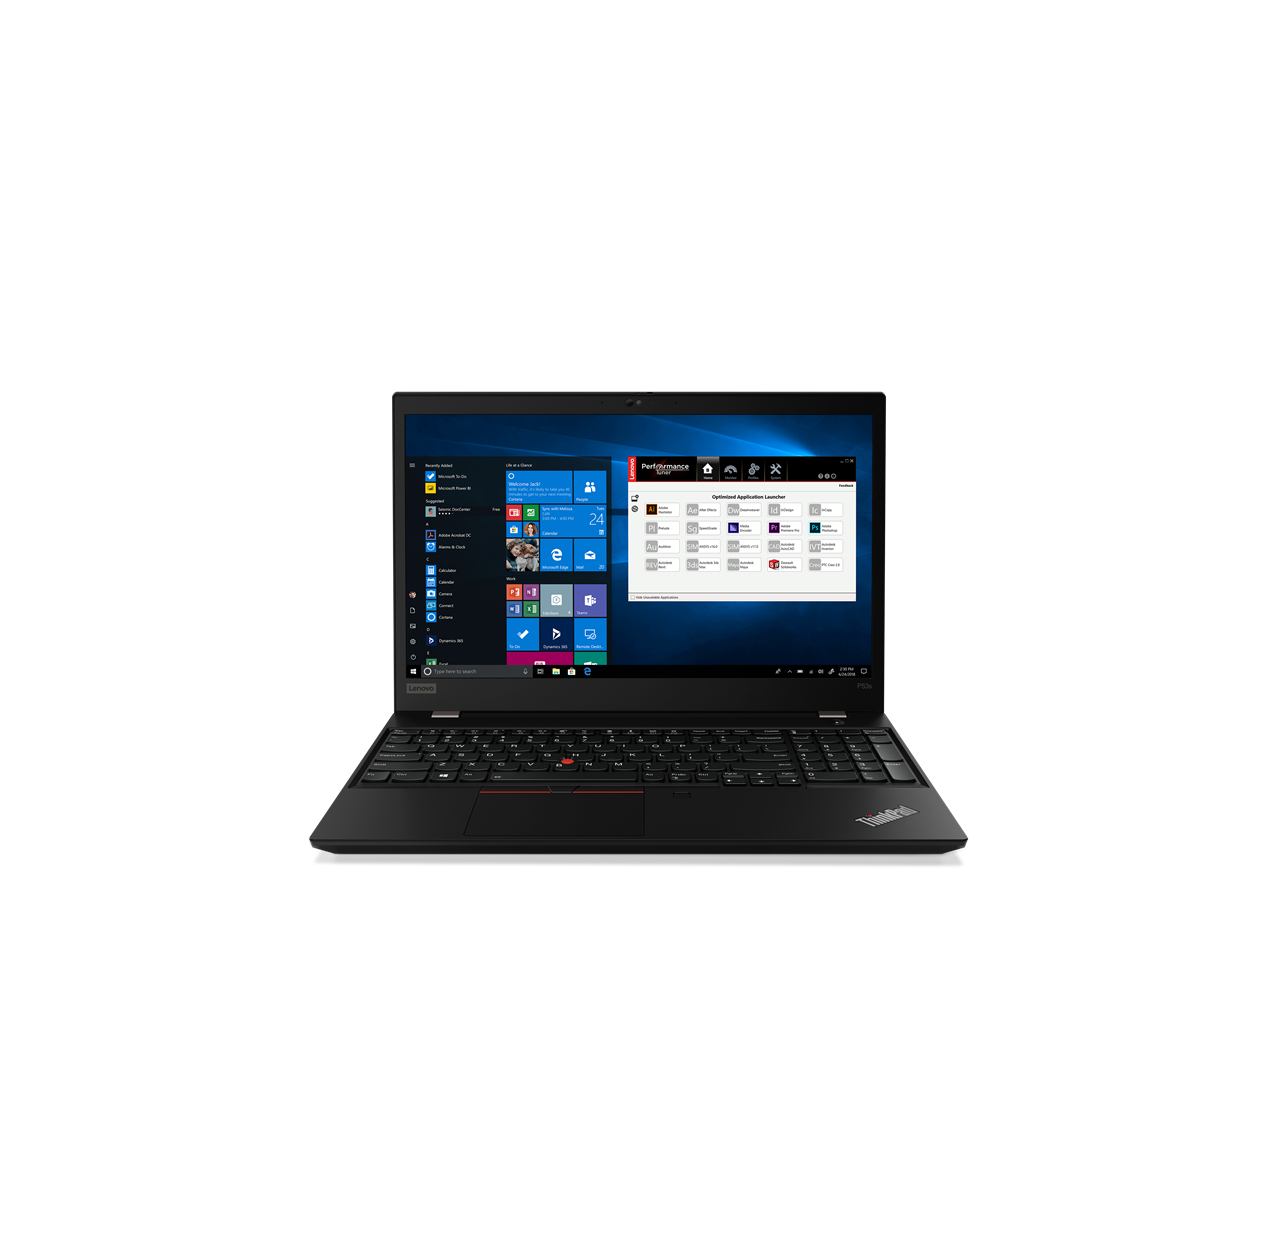 Laptop Lenovo ThinkPad P53s 15. 20N60016PB